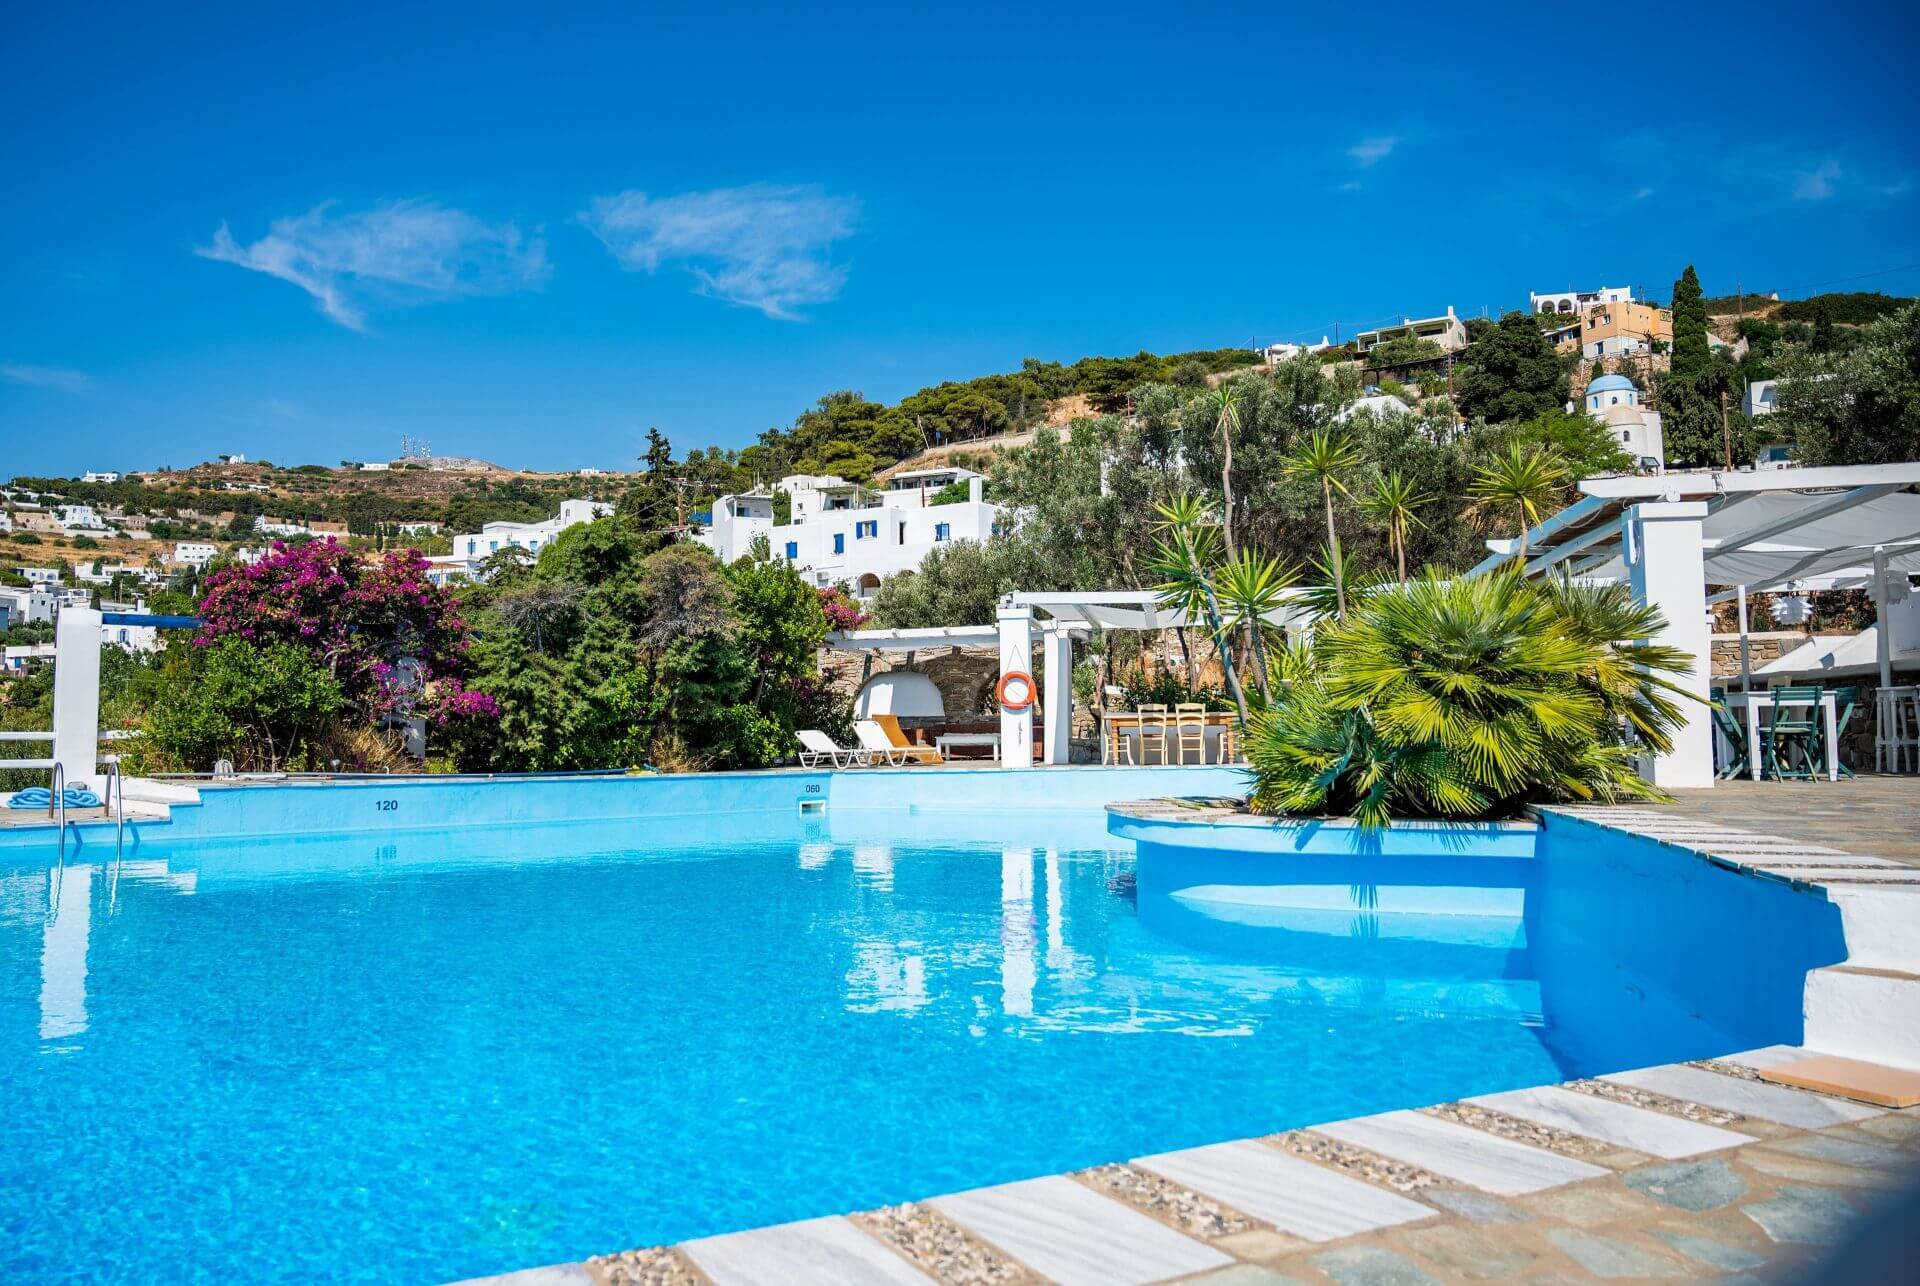 Accommodation and hotels in Paros